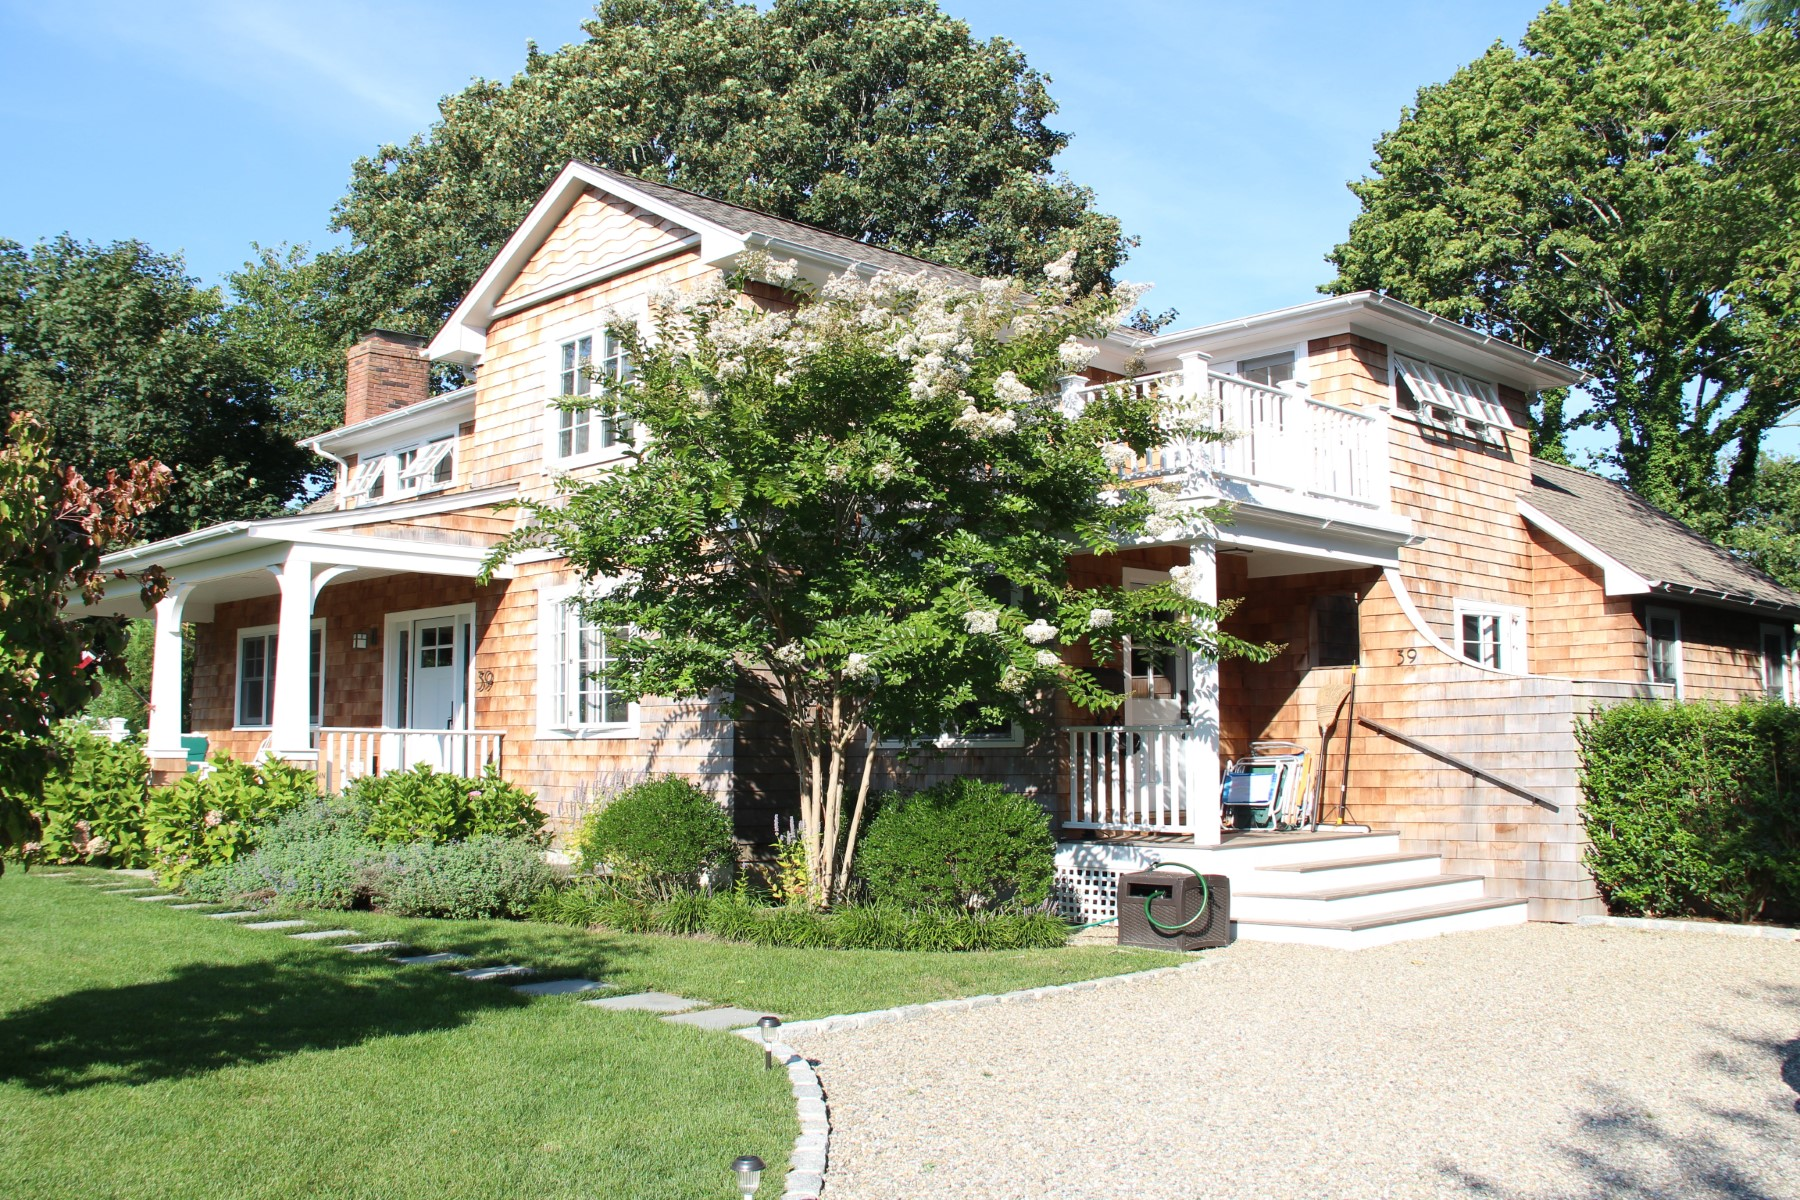 Single Family Home for Rent at Lovely in the Village East Hampton Village, East Hampton, New York, 11937 United States